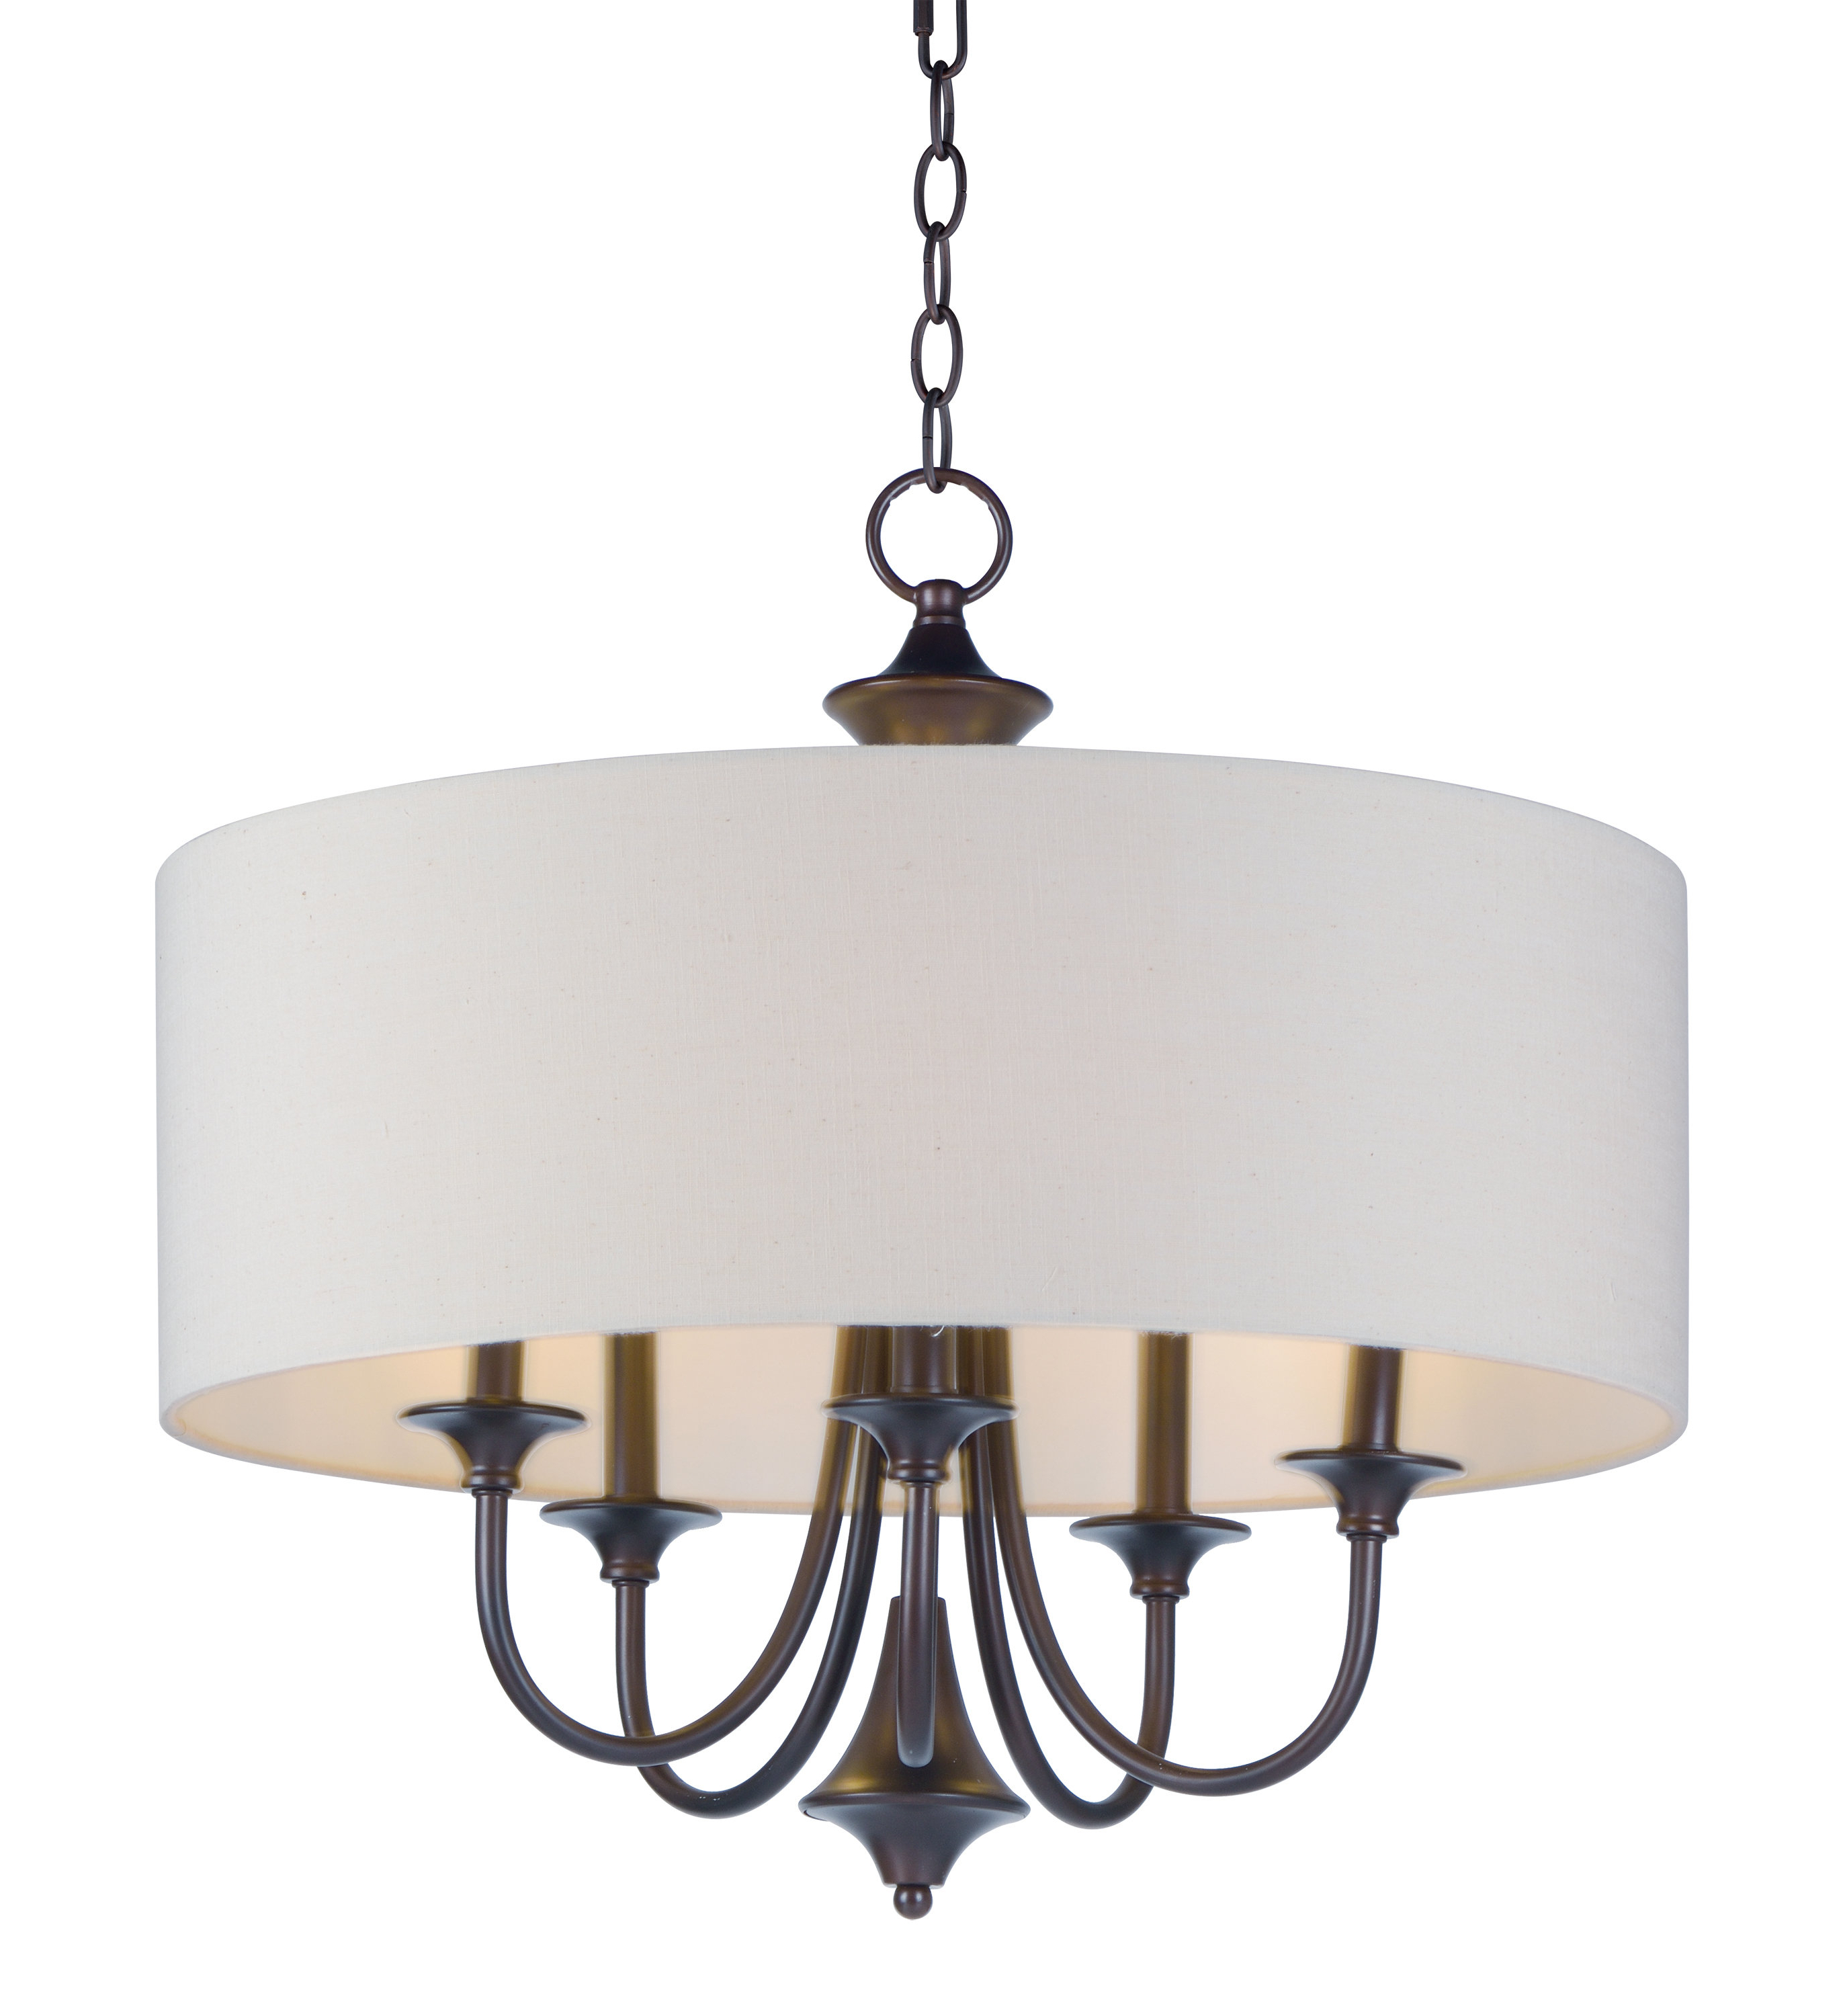 Abel 5 Light Drum Chandeliers With Recent Darby Home Co Becher 5 Light Drum Chandelier (View 5 of 25)